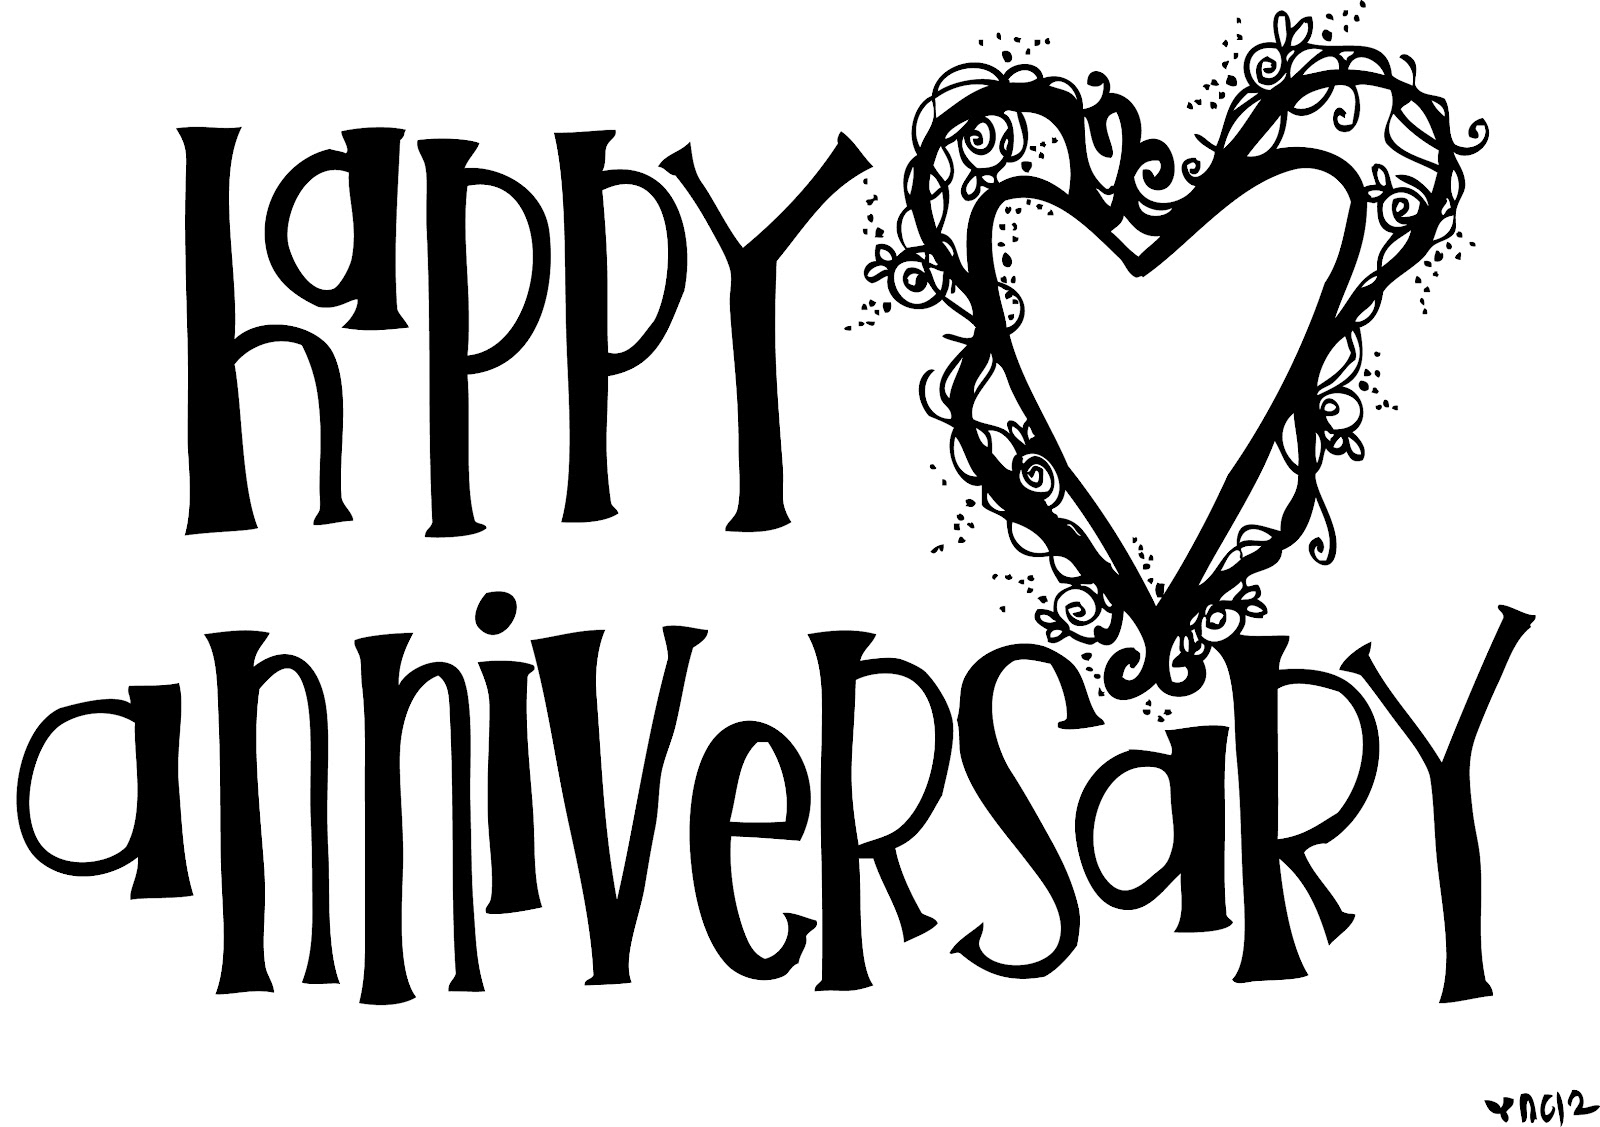 Anniversary clipart file. Free pictures for download